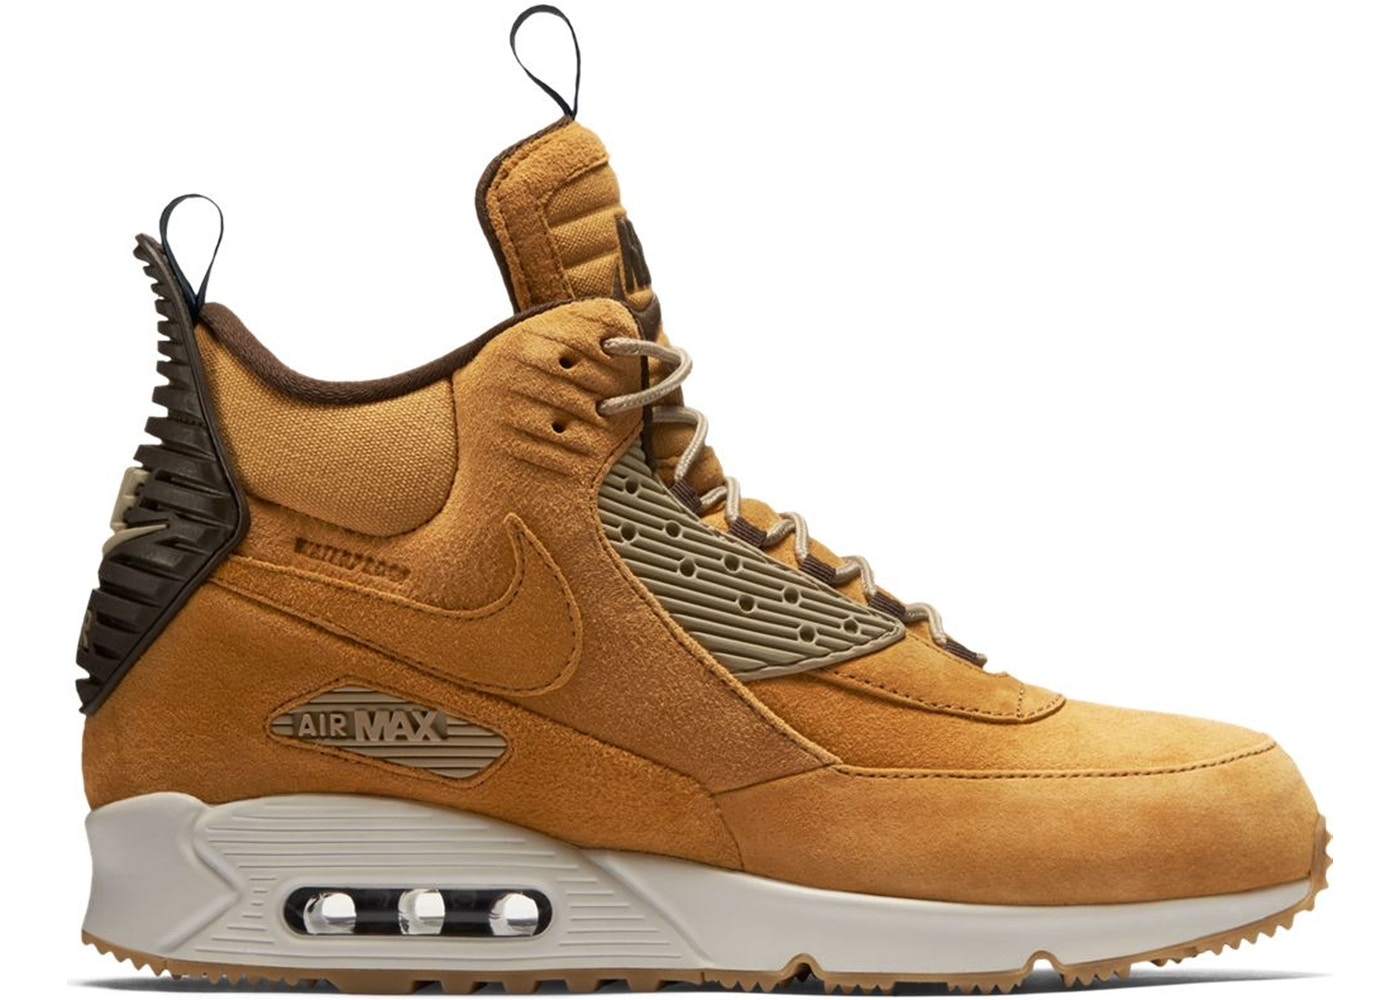 18d7c0a088 Sell. or Ask. Size: 10.5. View All Bids. Air Max 90 Sneakerboot Winter Wheat